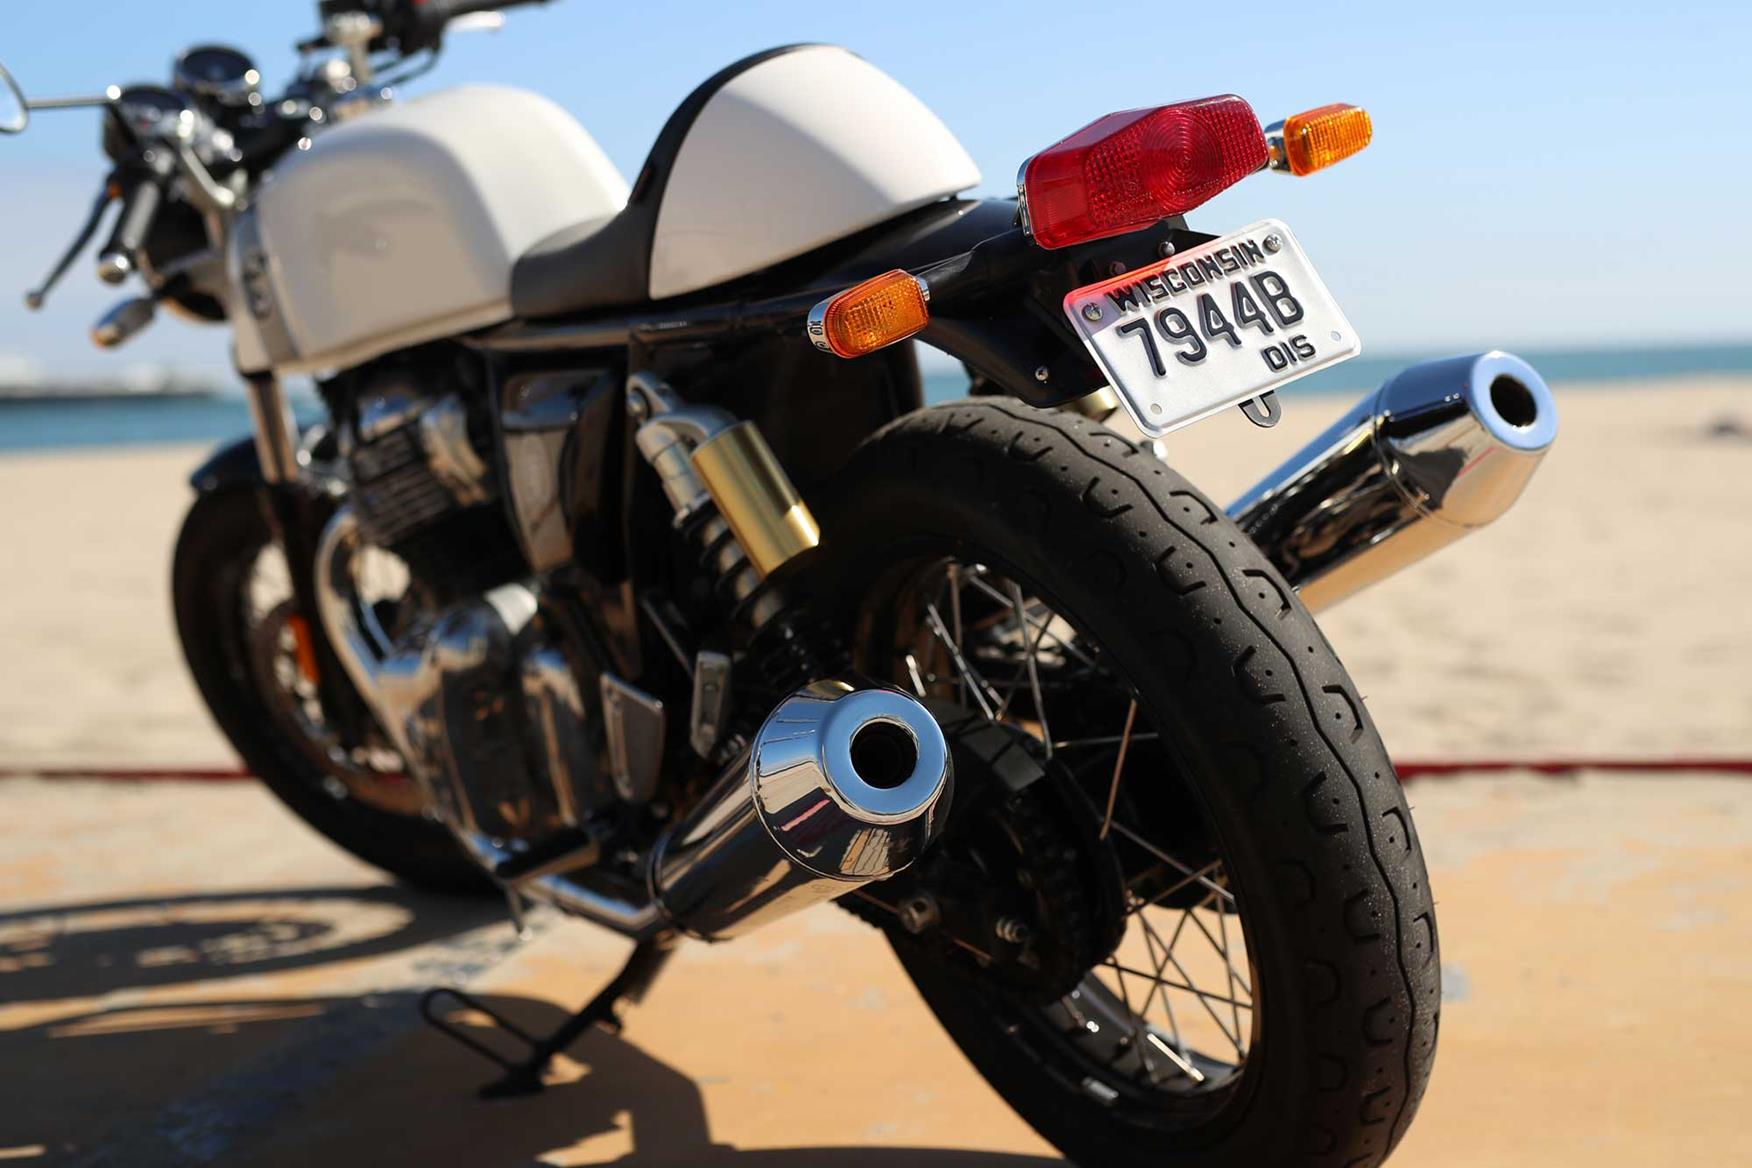 Enfield Continental Gt 2018 On Review Specs Prices Mcn